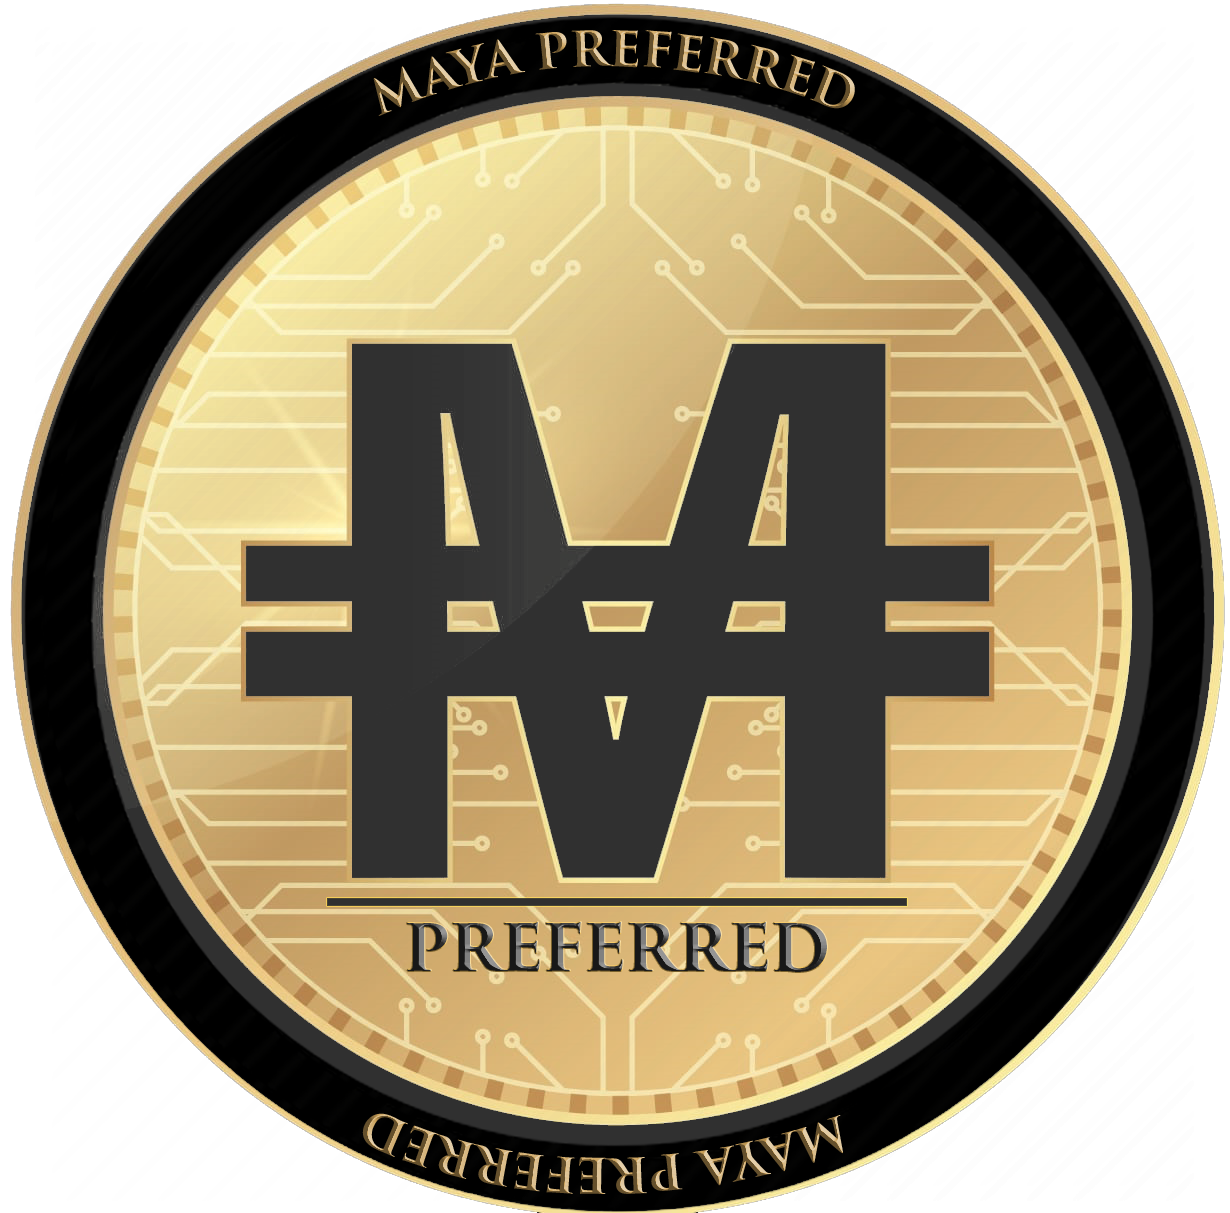 Maya Preferred 223 does what no other Cryptocurrency has ever done before